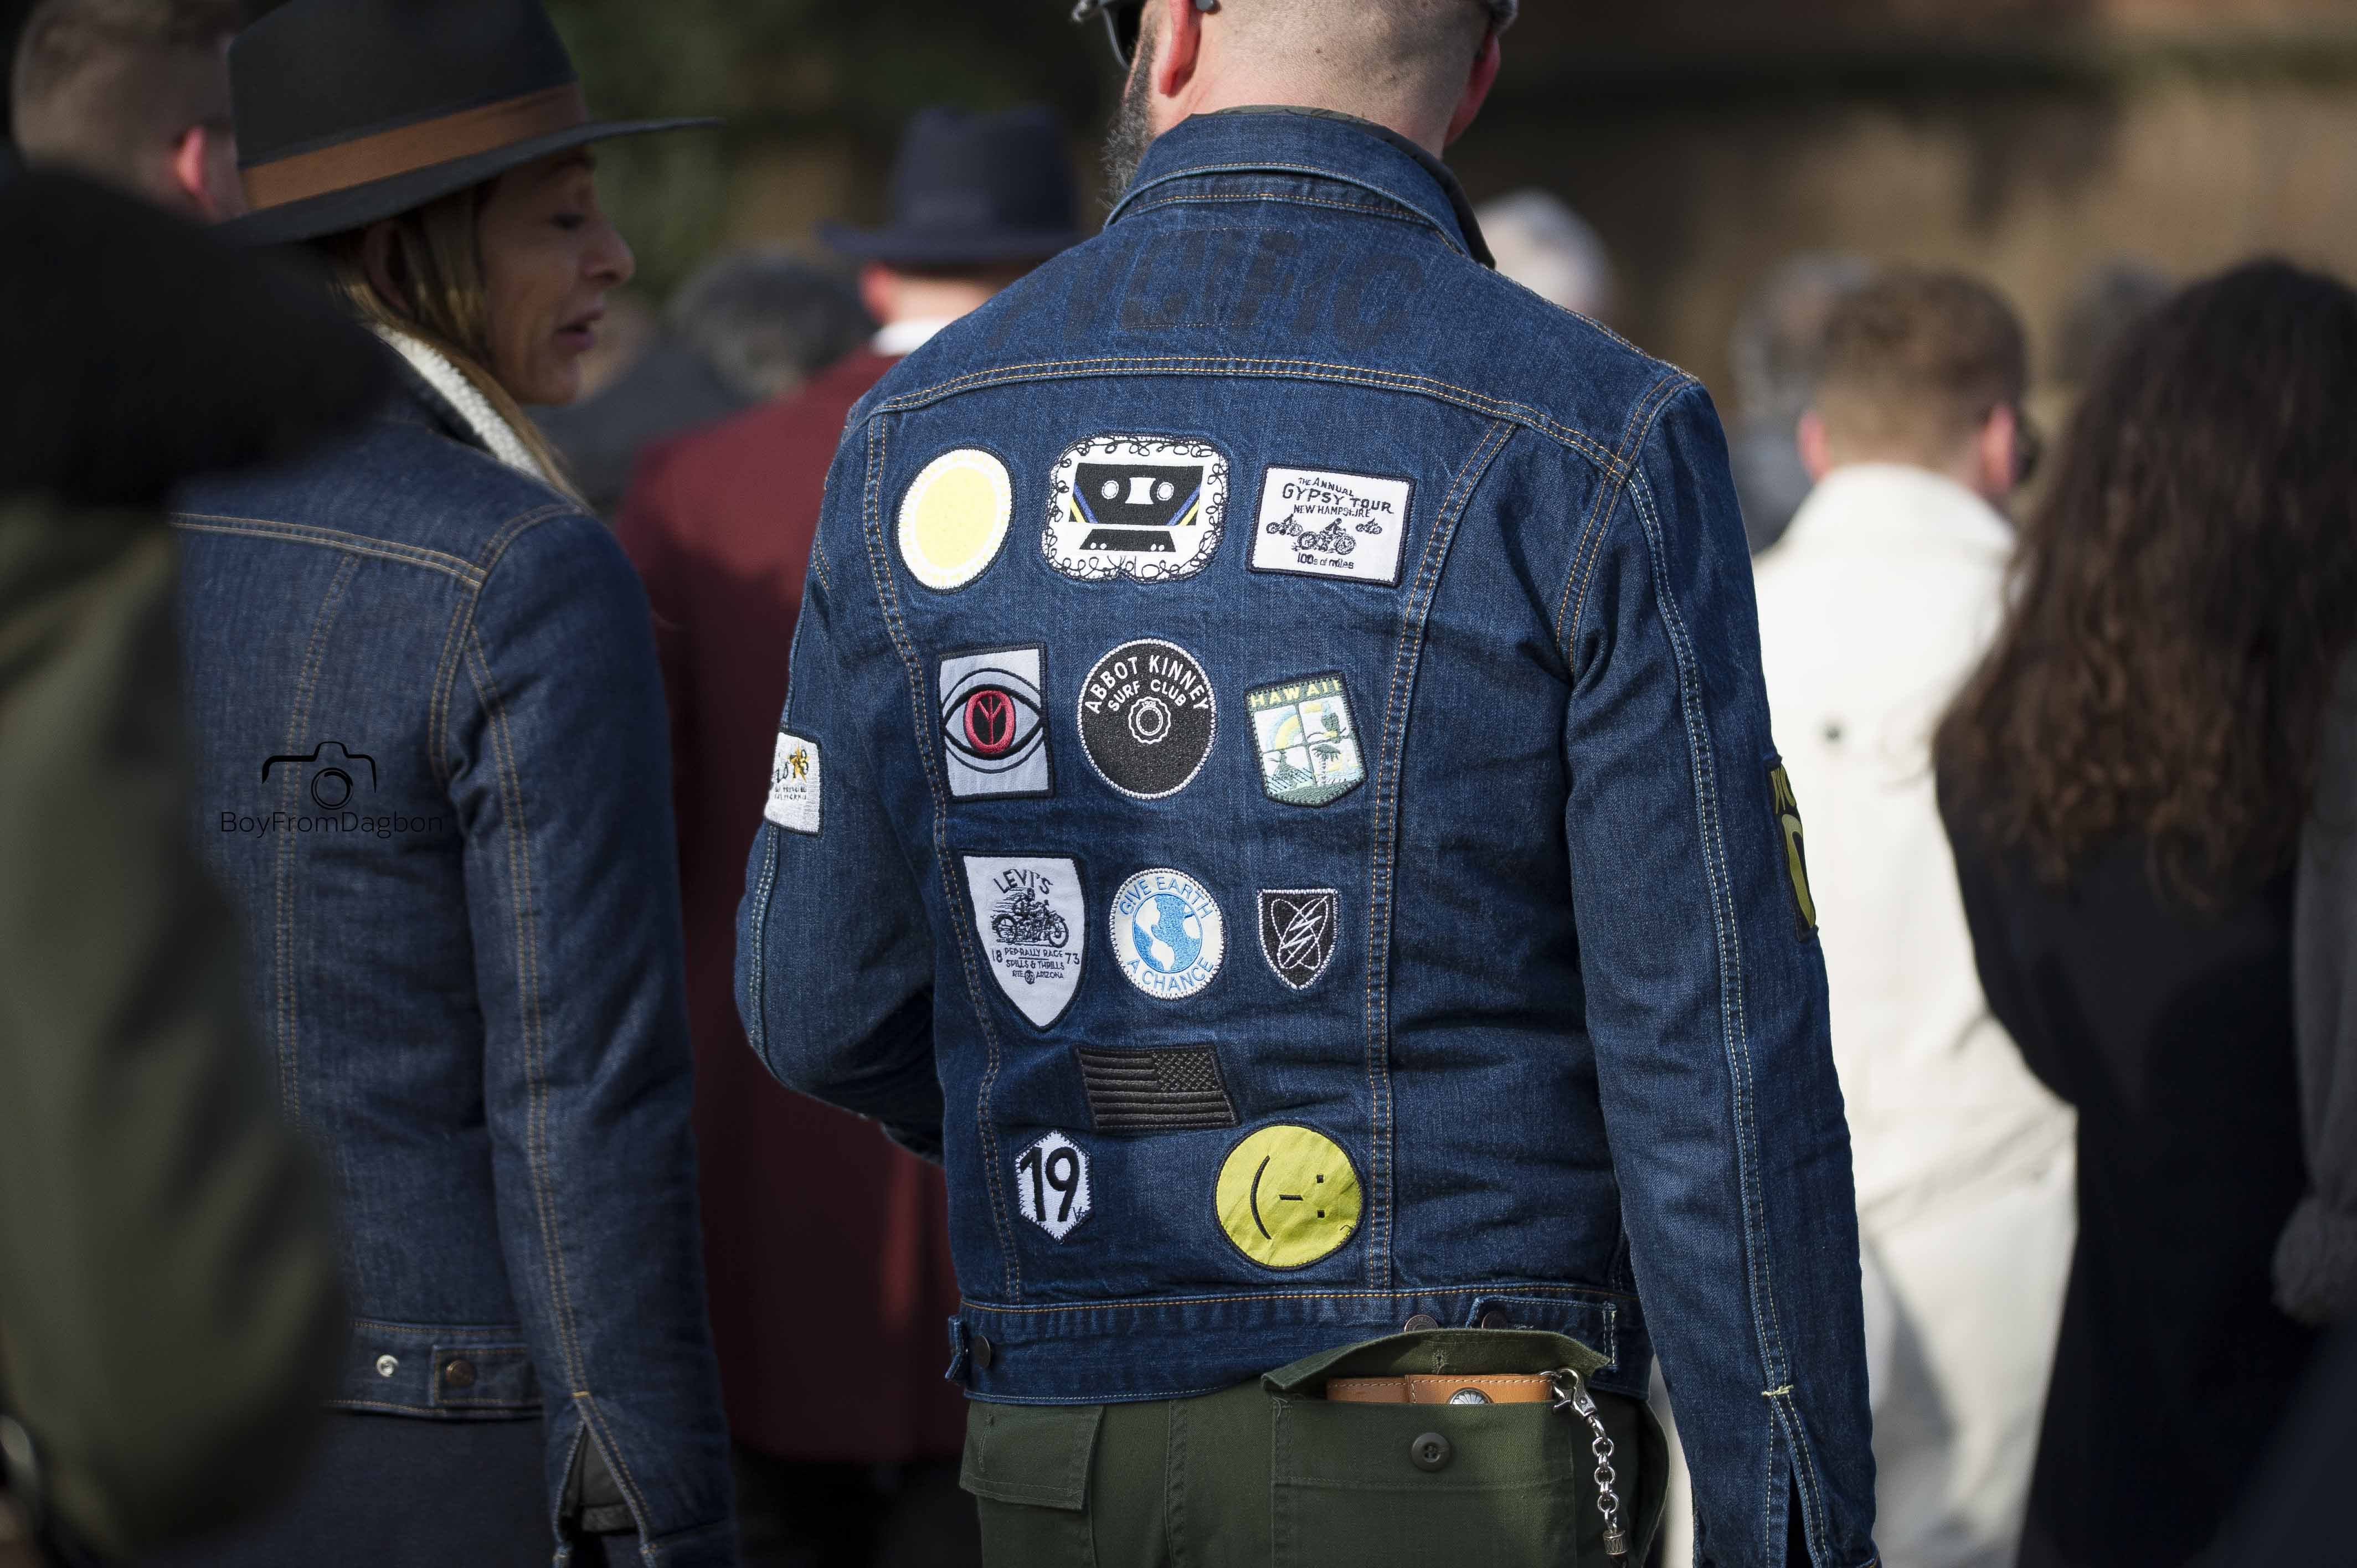 Why Denim is Globally Popular